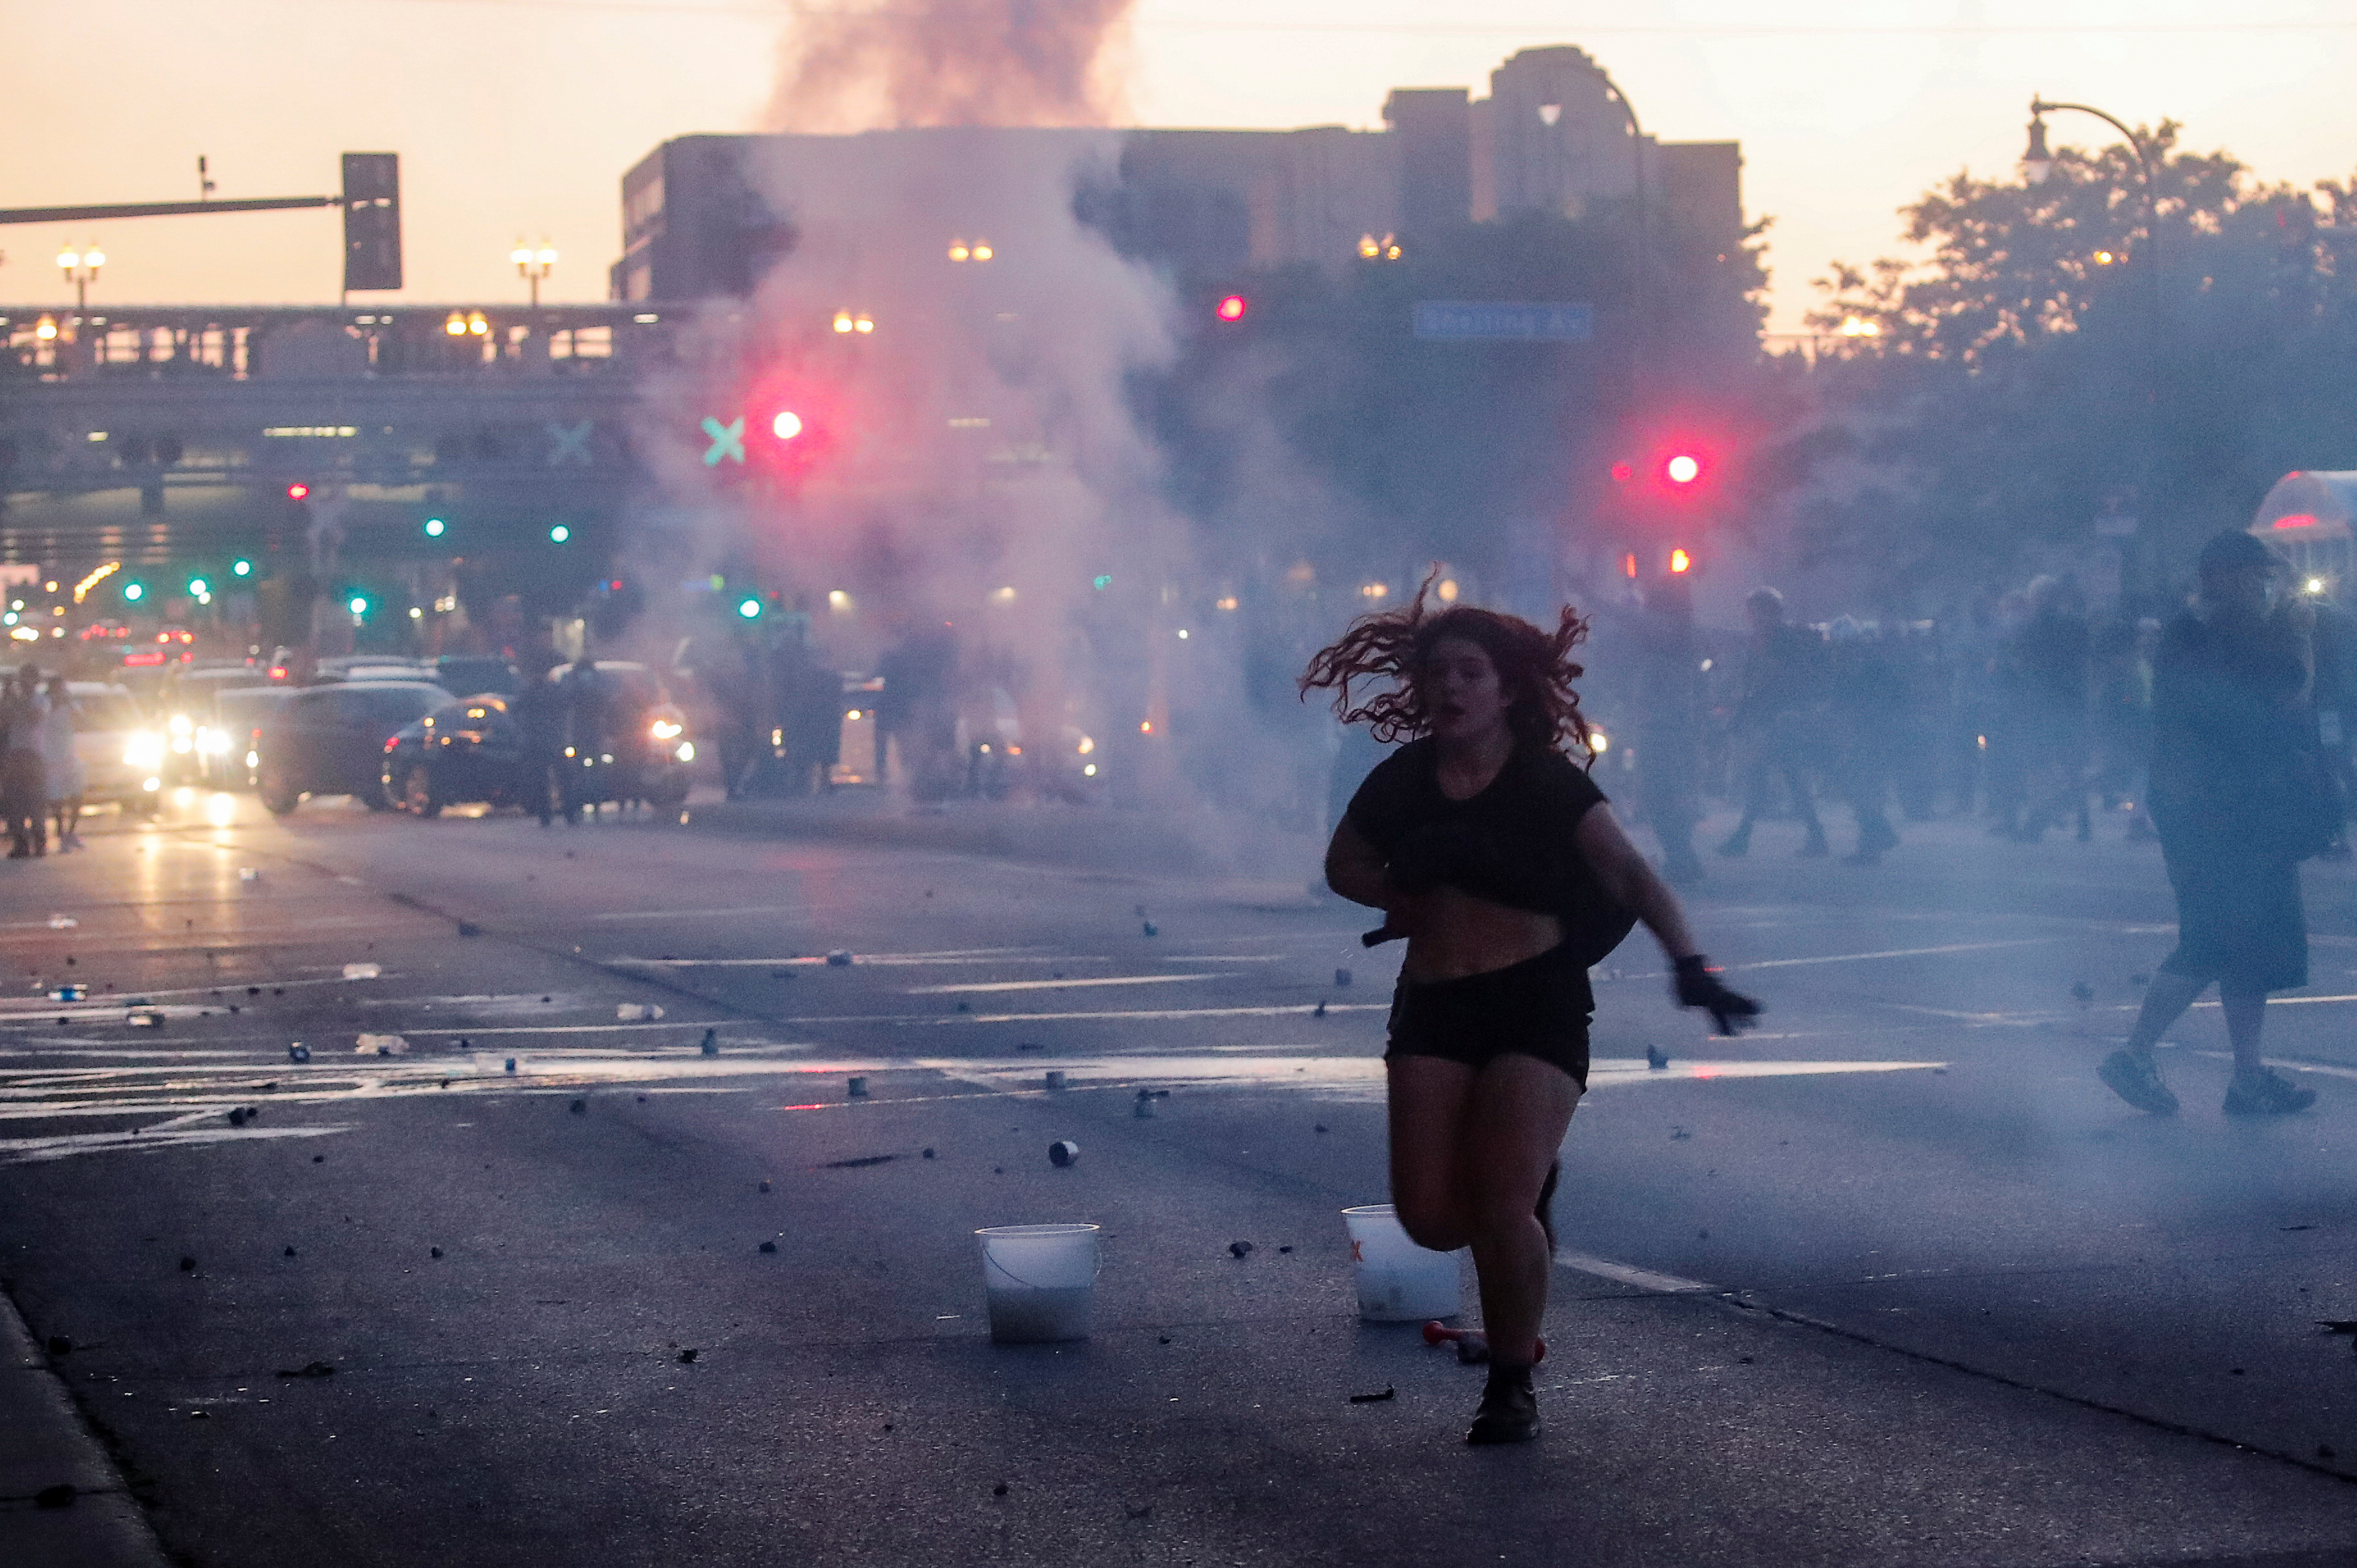 A woman reacts on a street as tear gas is used by riot police to disperse protesters as demonstrations continue after a white police officer was caught on a bystander's video pressing his knee into the neck of African-American man George Floyd, who later died at a hospital, in Minneapolis, Minnesota, US, on May 28, 2020. Photo: AP